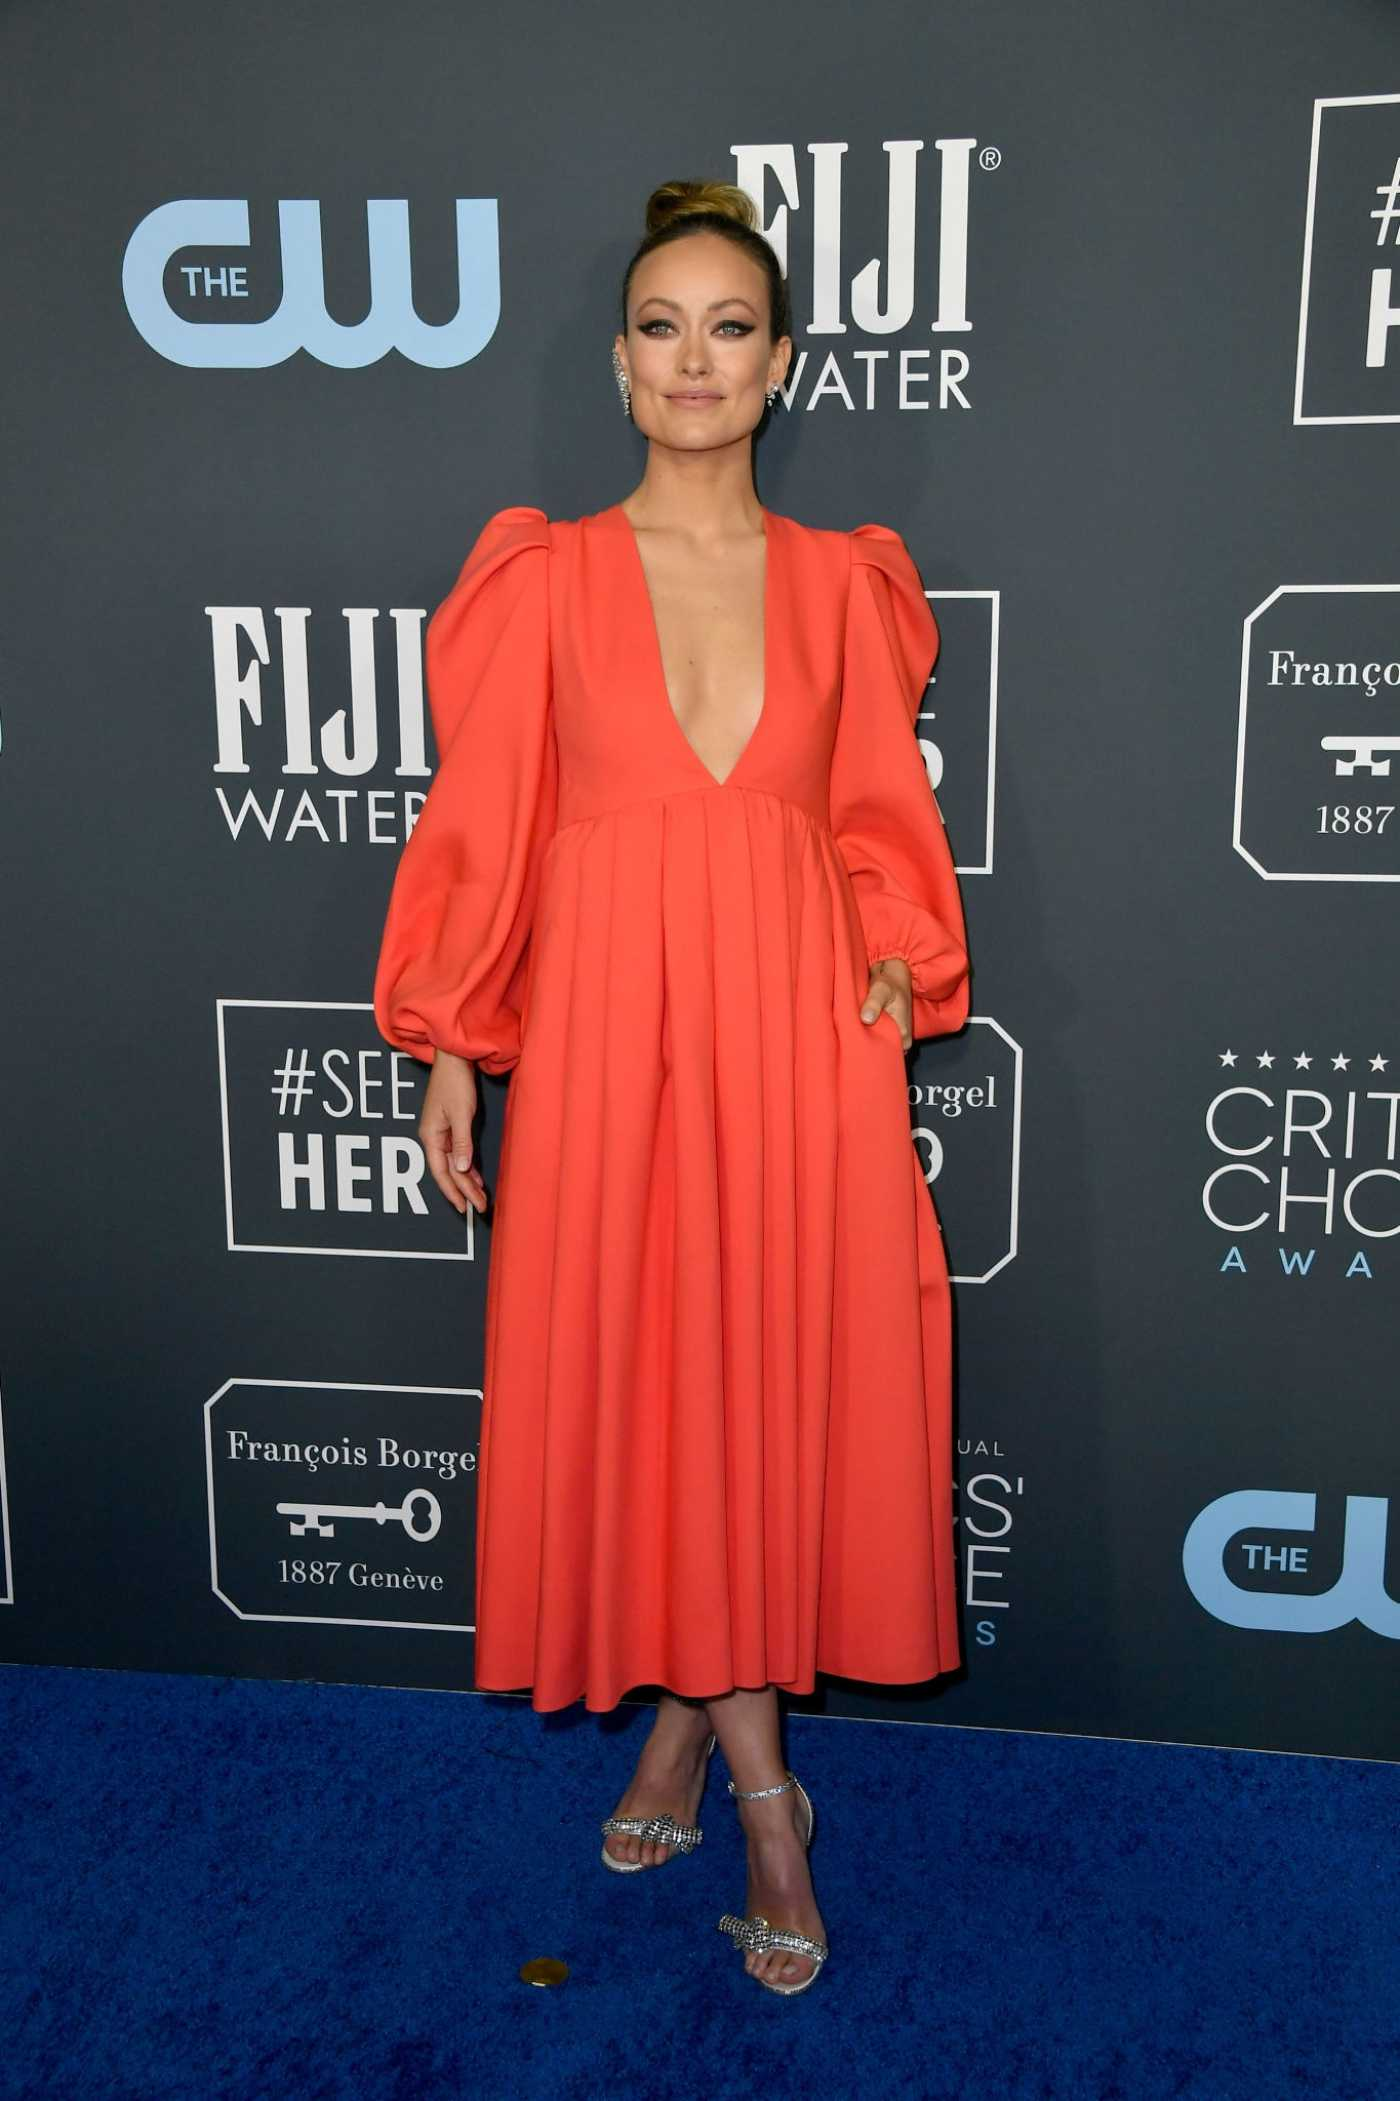 Olivia Wilde Attends the 25th Annual Critics Choice Awards in Santa Monica 01/12/2020